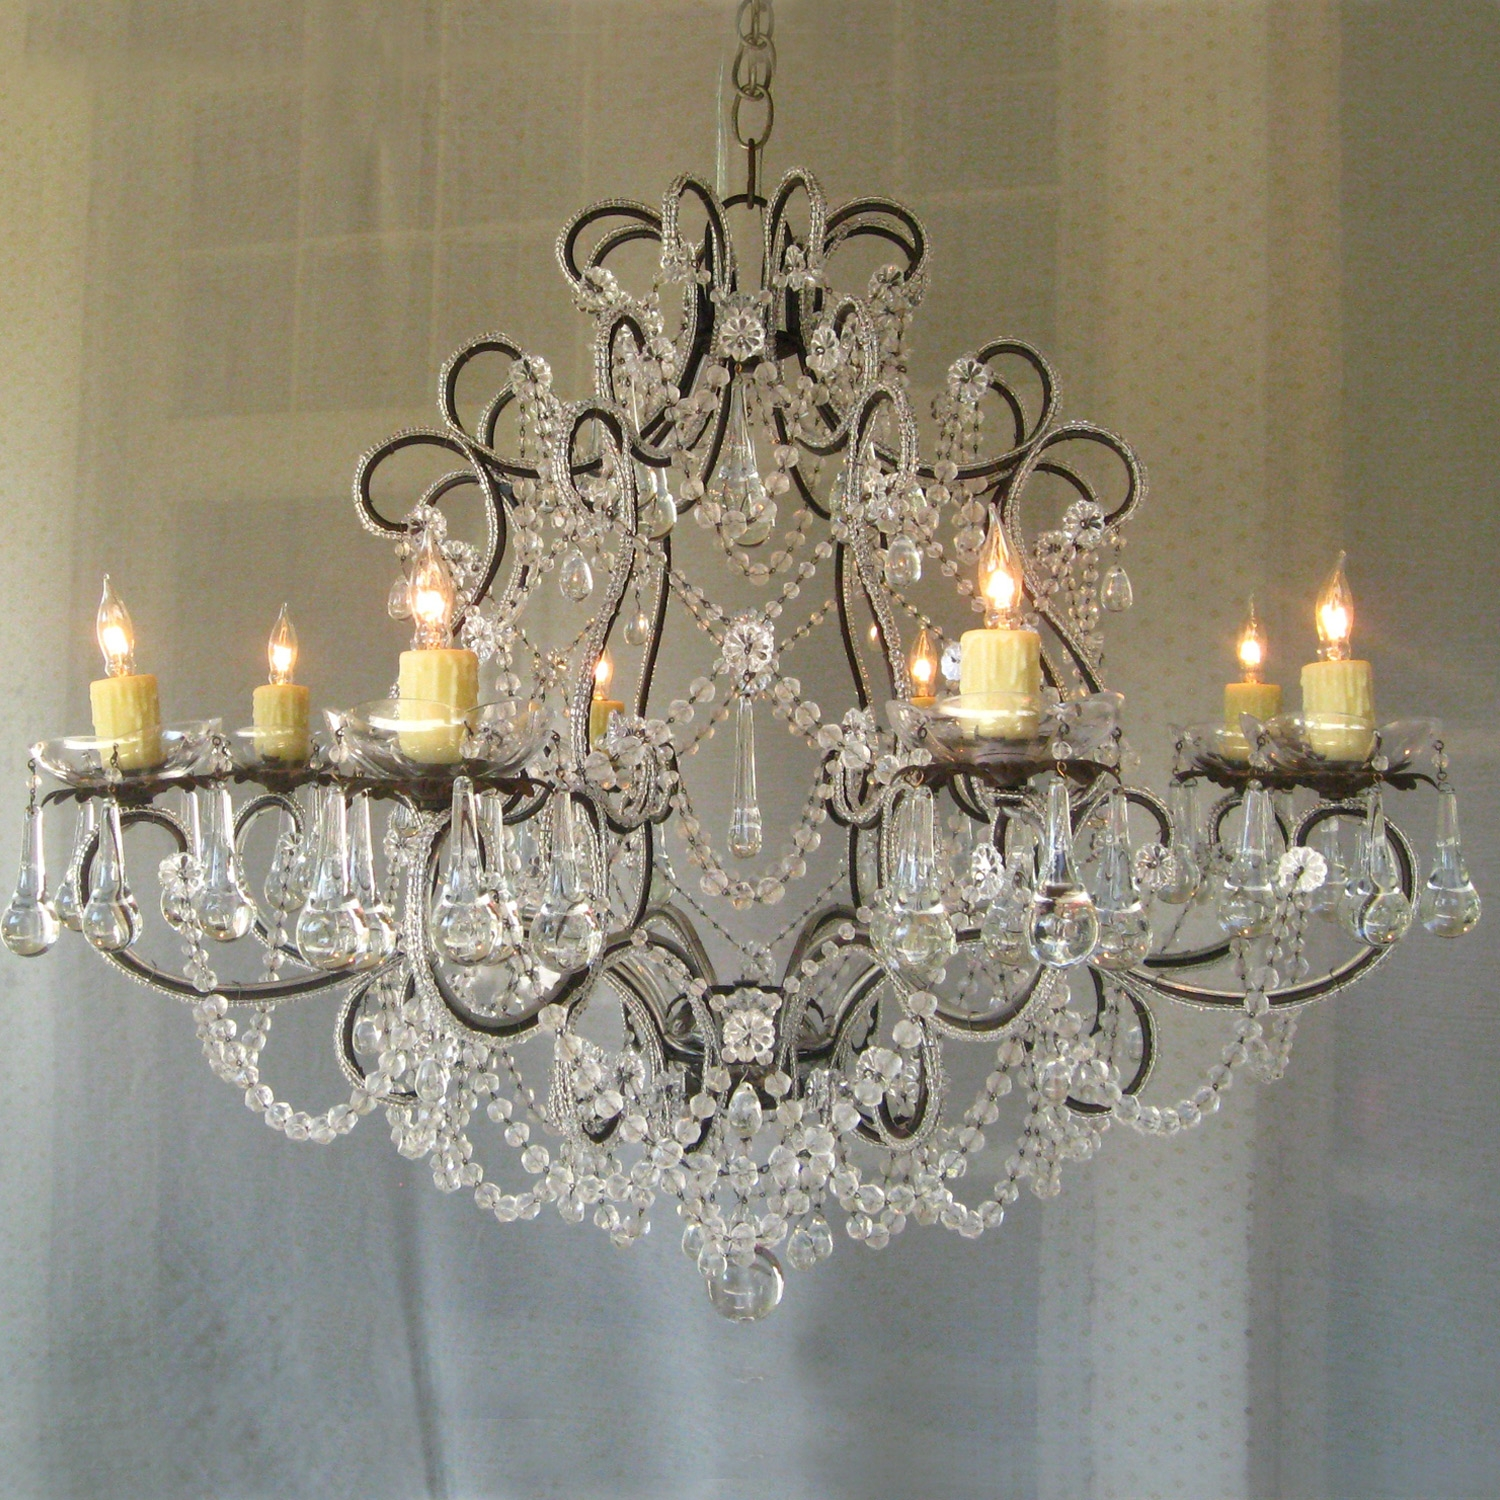 Great Shab Chic Chandelier About Small Home Decor Inspiration Within Small Shabby Chic Chandelier (Image 7 of 15)